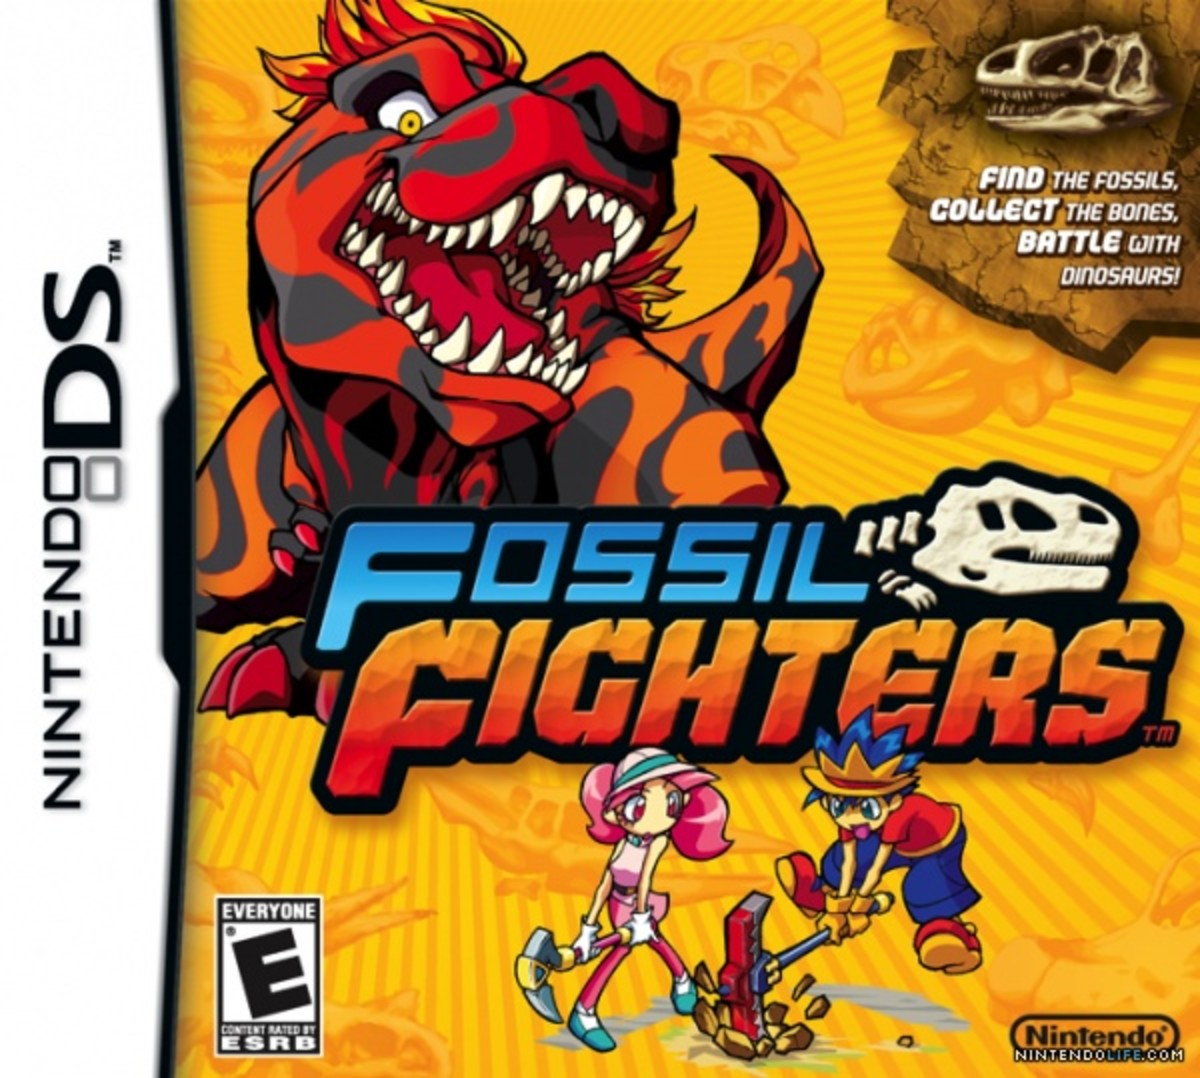 The cover art for Fossil Fighters on Nintendo DS.